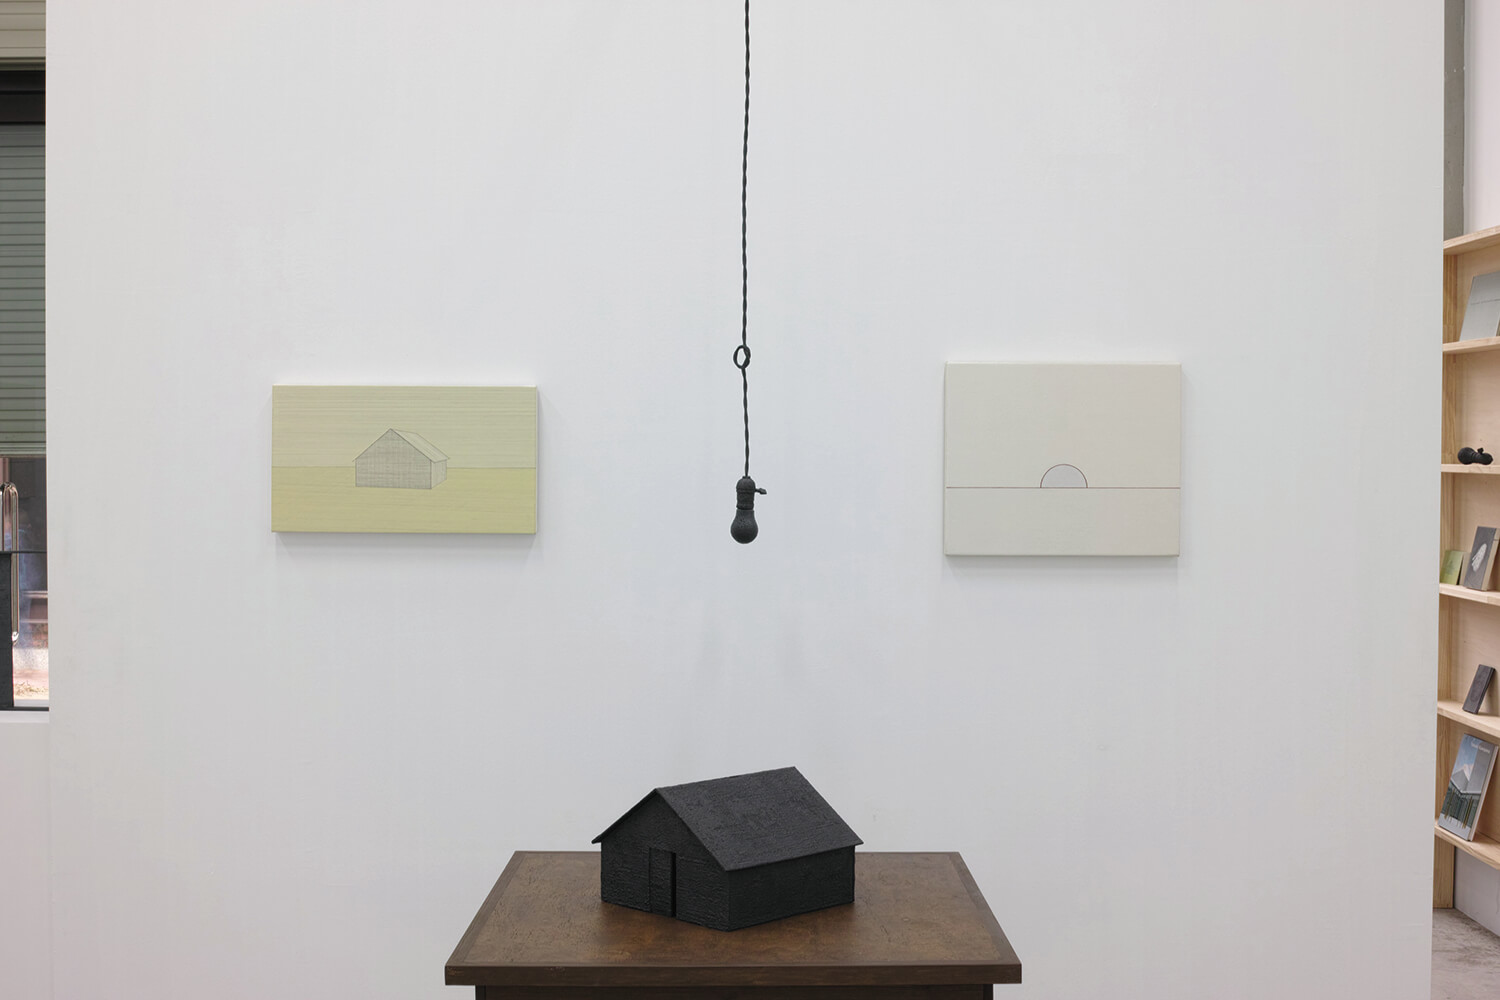 Installation View 3